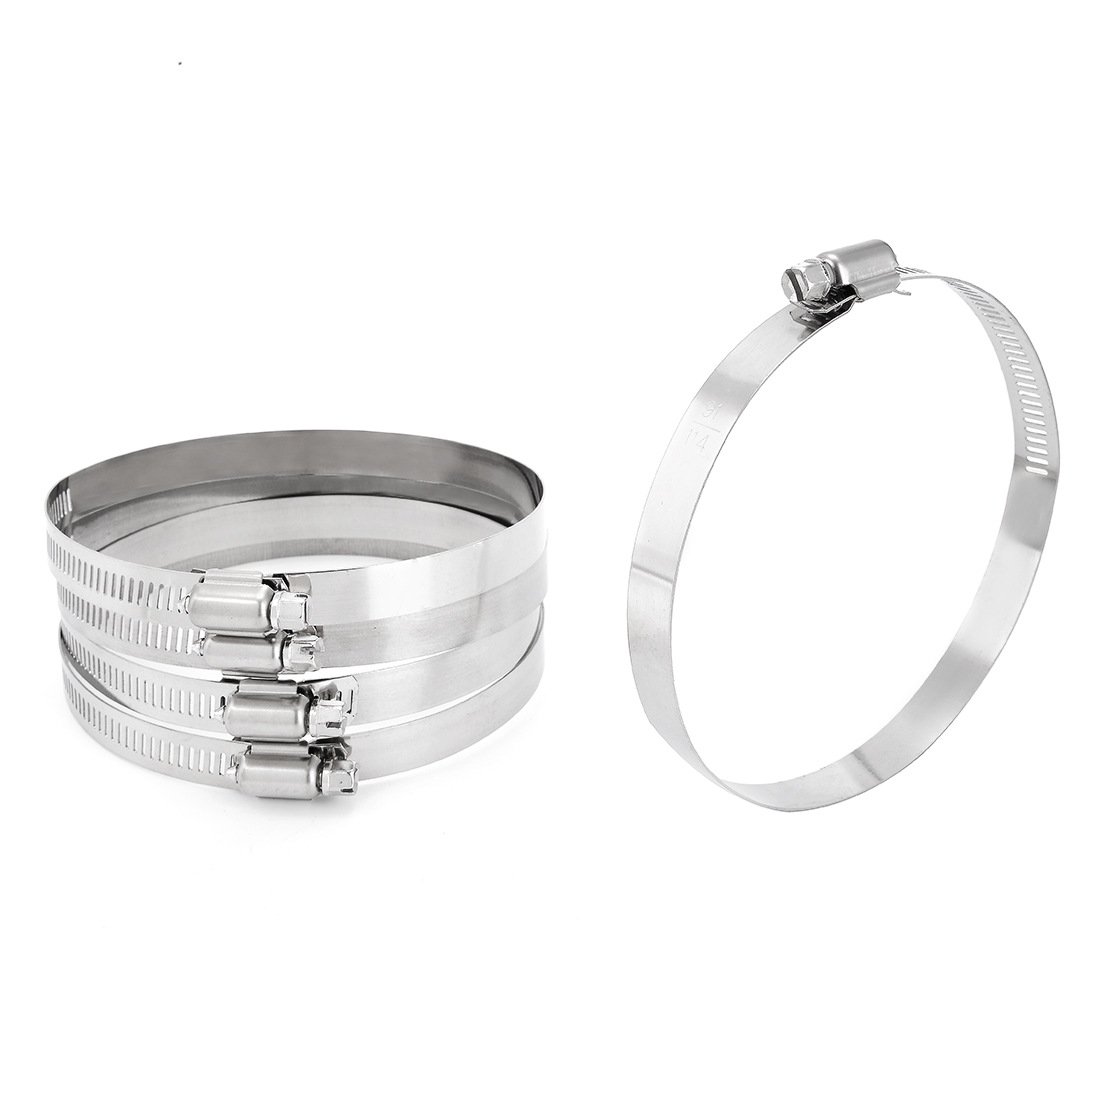 3.6-inch to 4.5-inch Clamping Range 201 Stainless Steel American Worm Gear Hose Clamp 5pcs